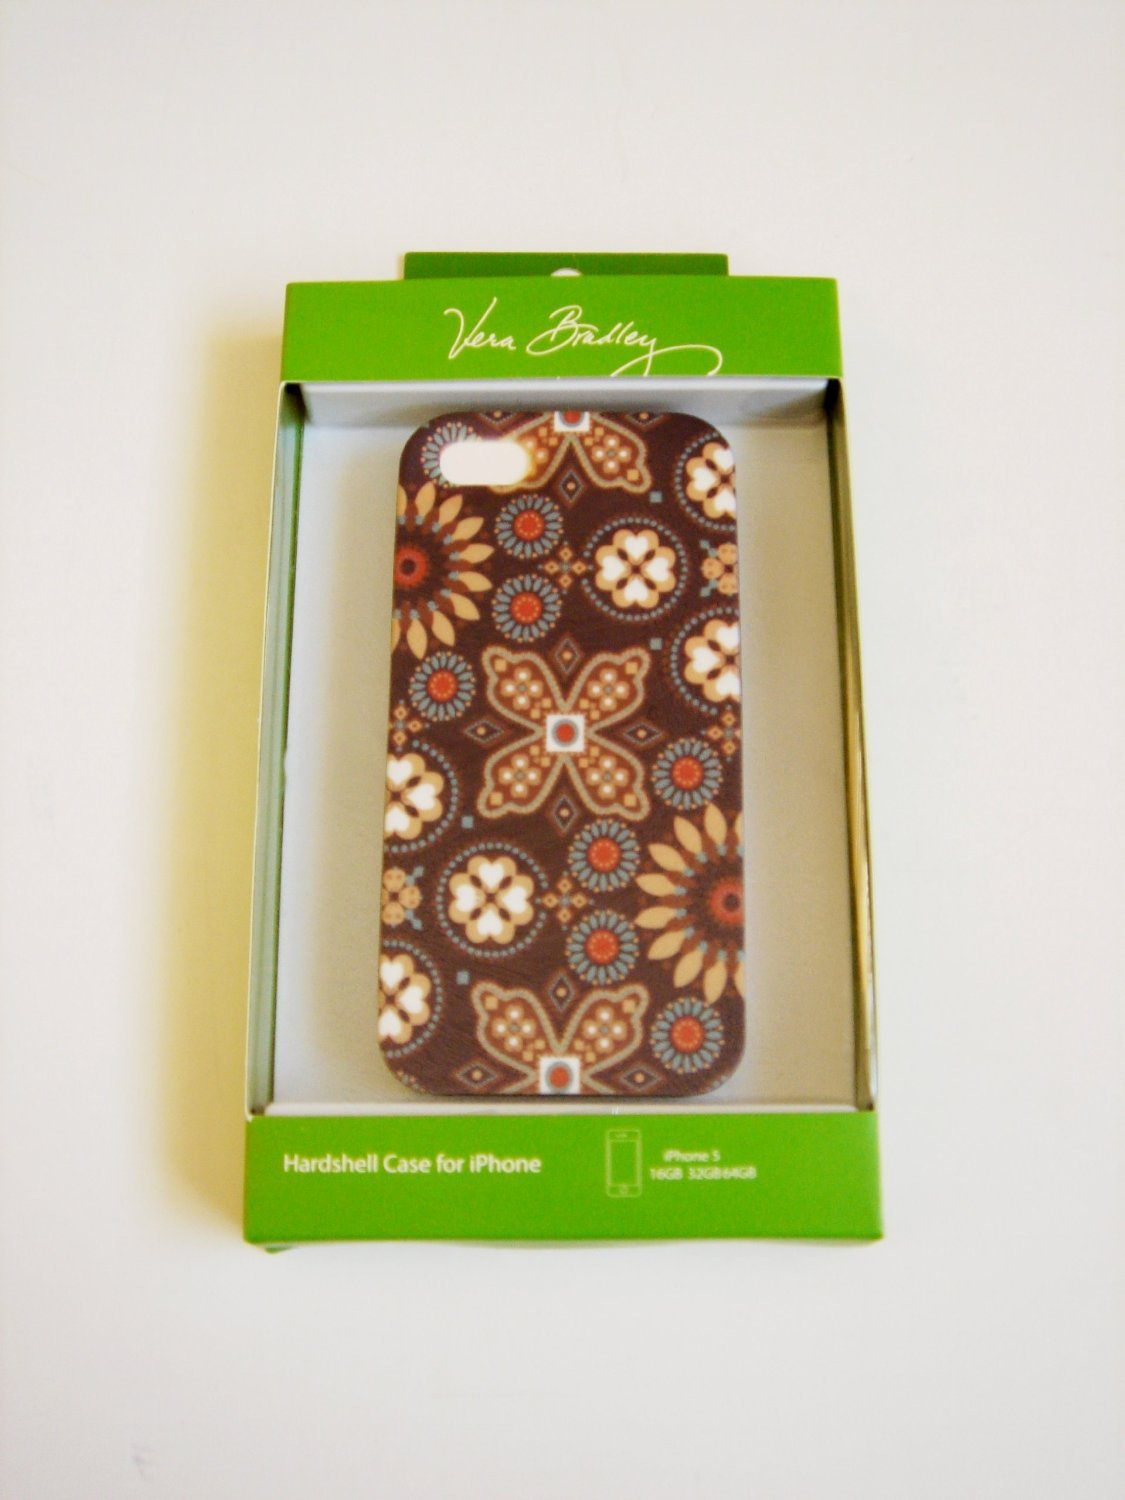 Vera Bradley iPhone 4/4S hardshell case FS Canyon brown smartphone cover NIB Retired